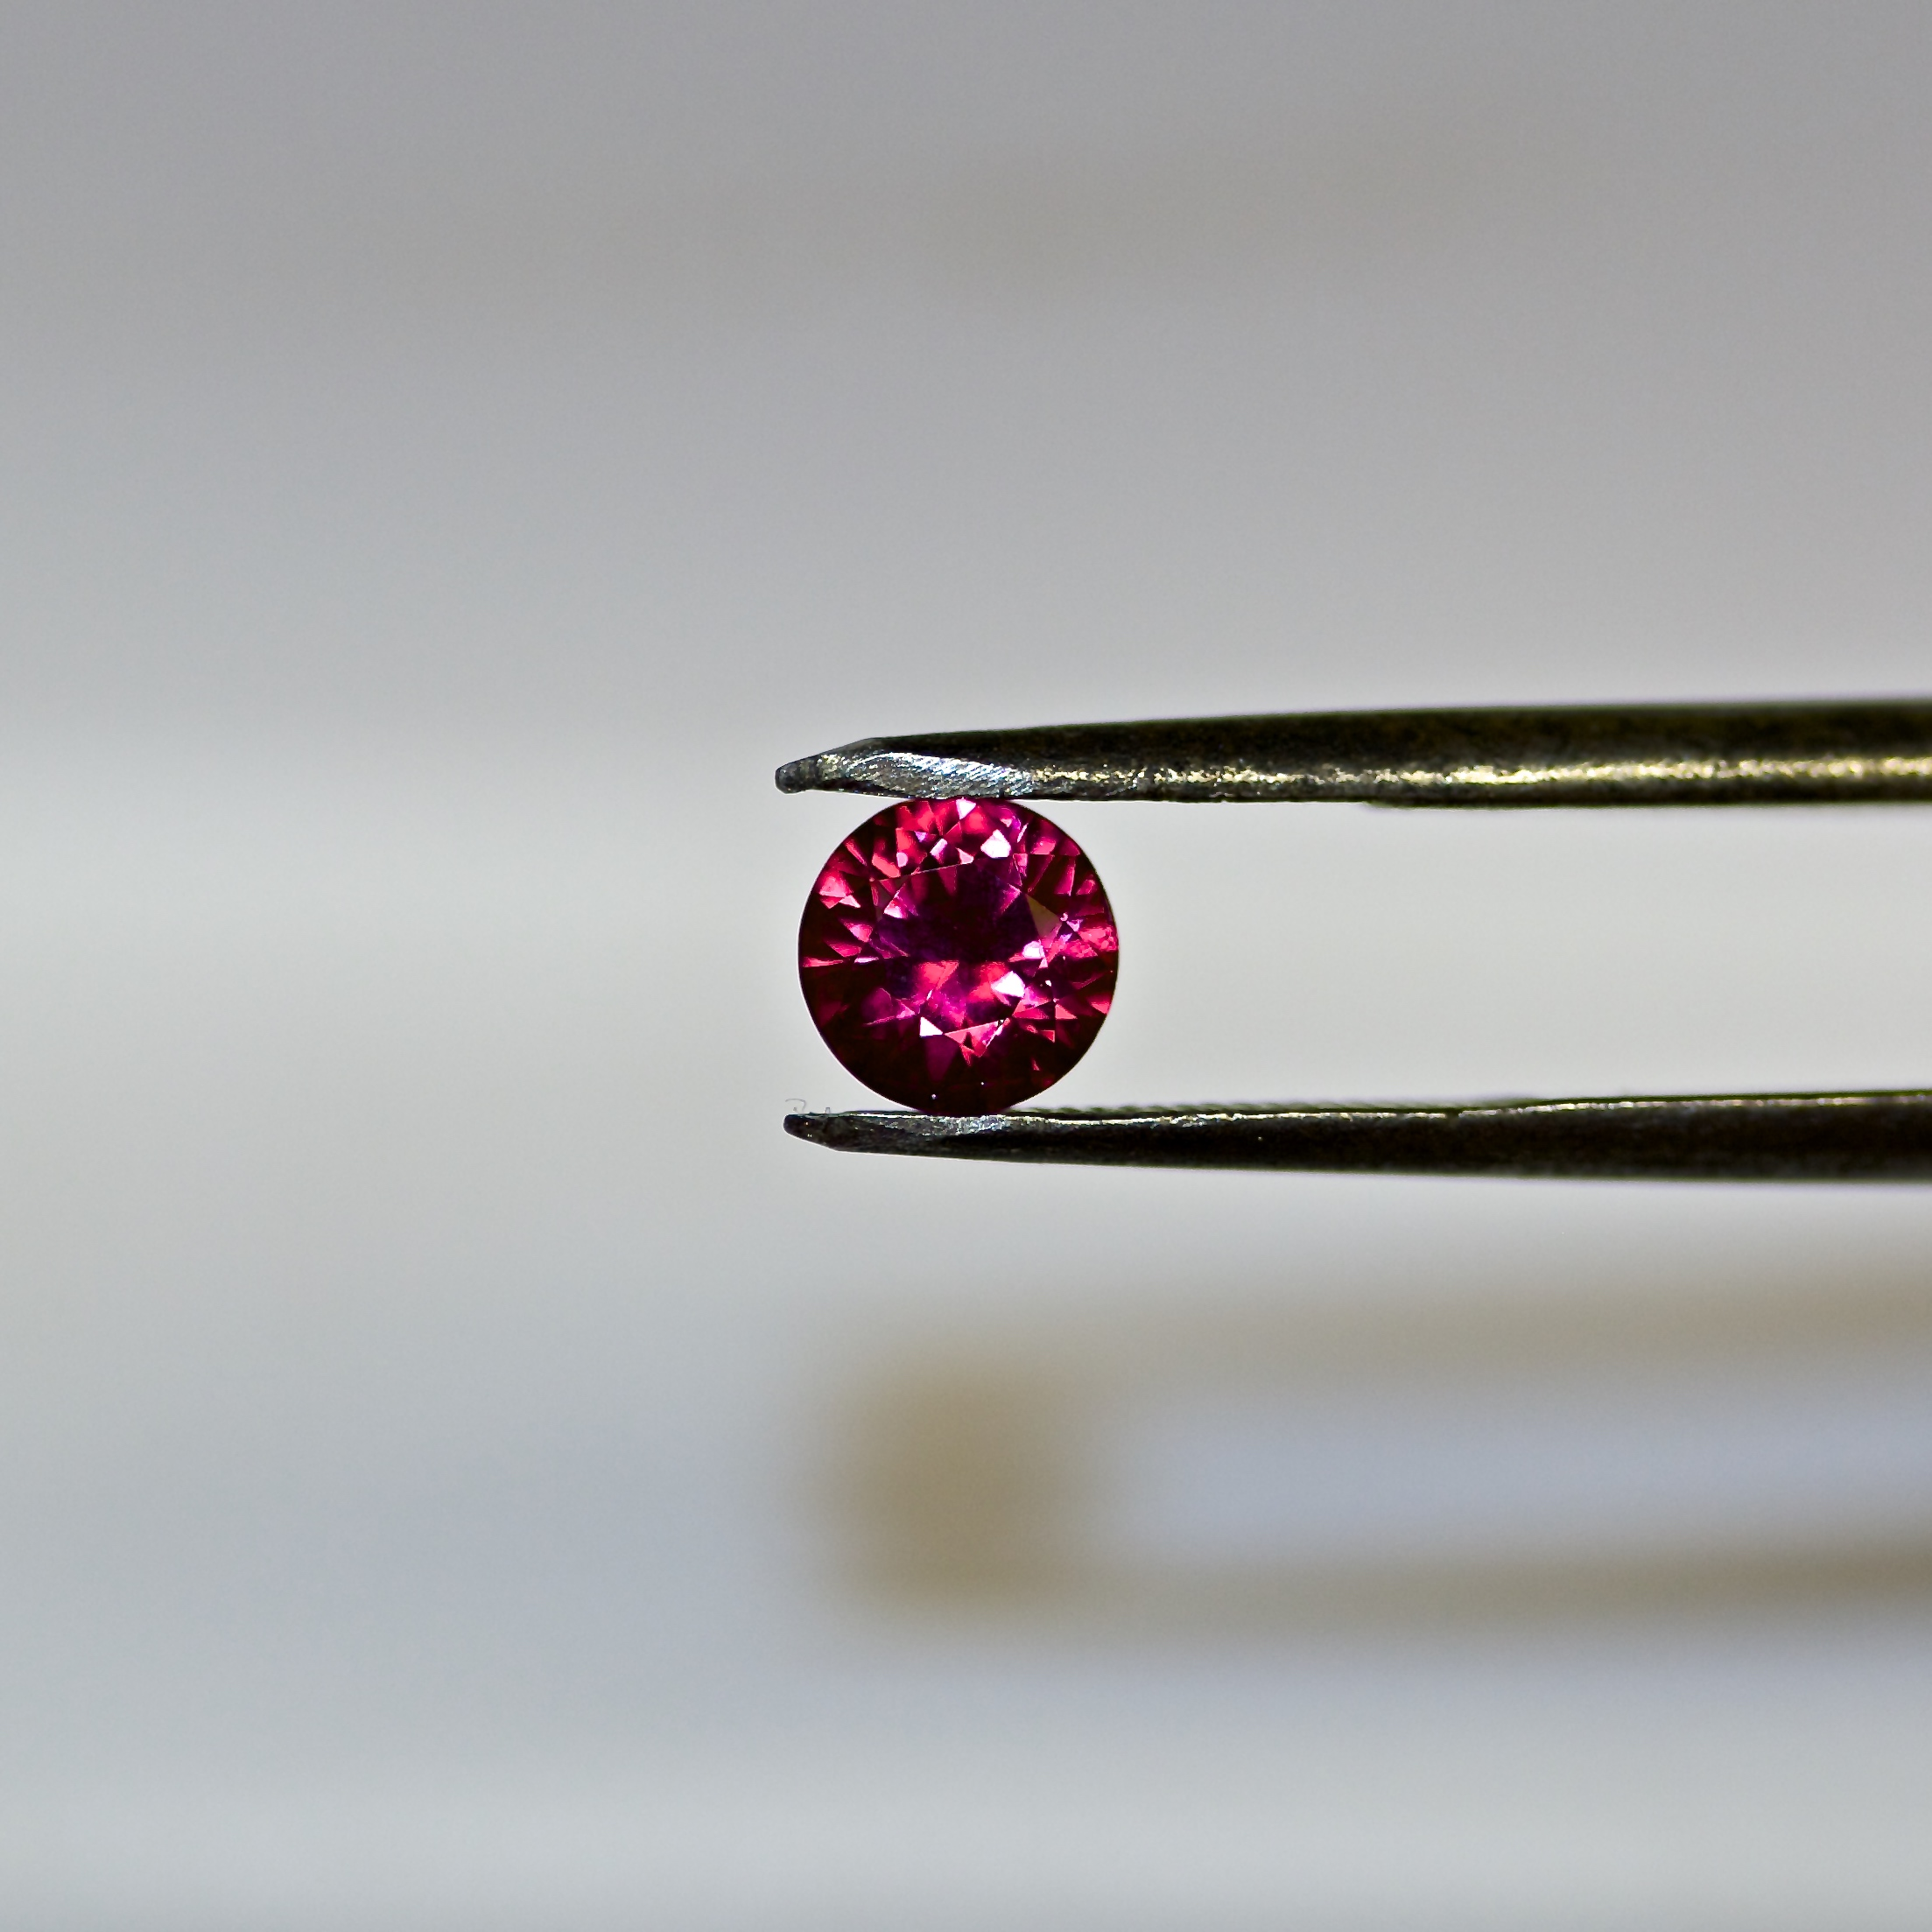 Enement Ring Buying Guide | Ruby Buyers Guide David Ashtons 30years Experience